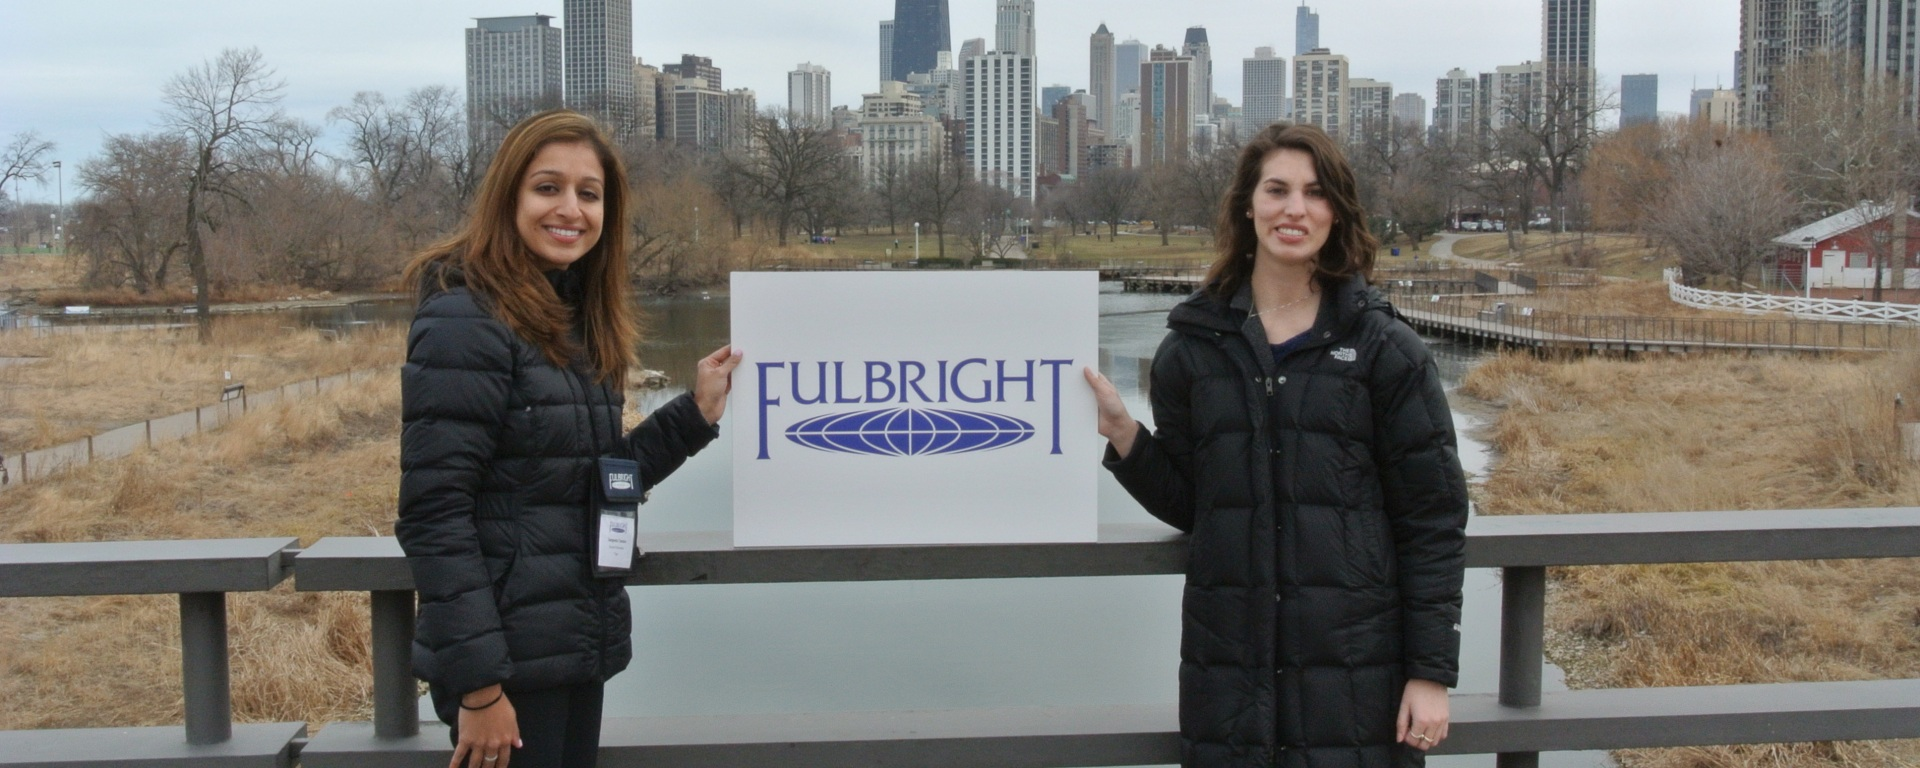 Fulbright and the Chicago Skyline